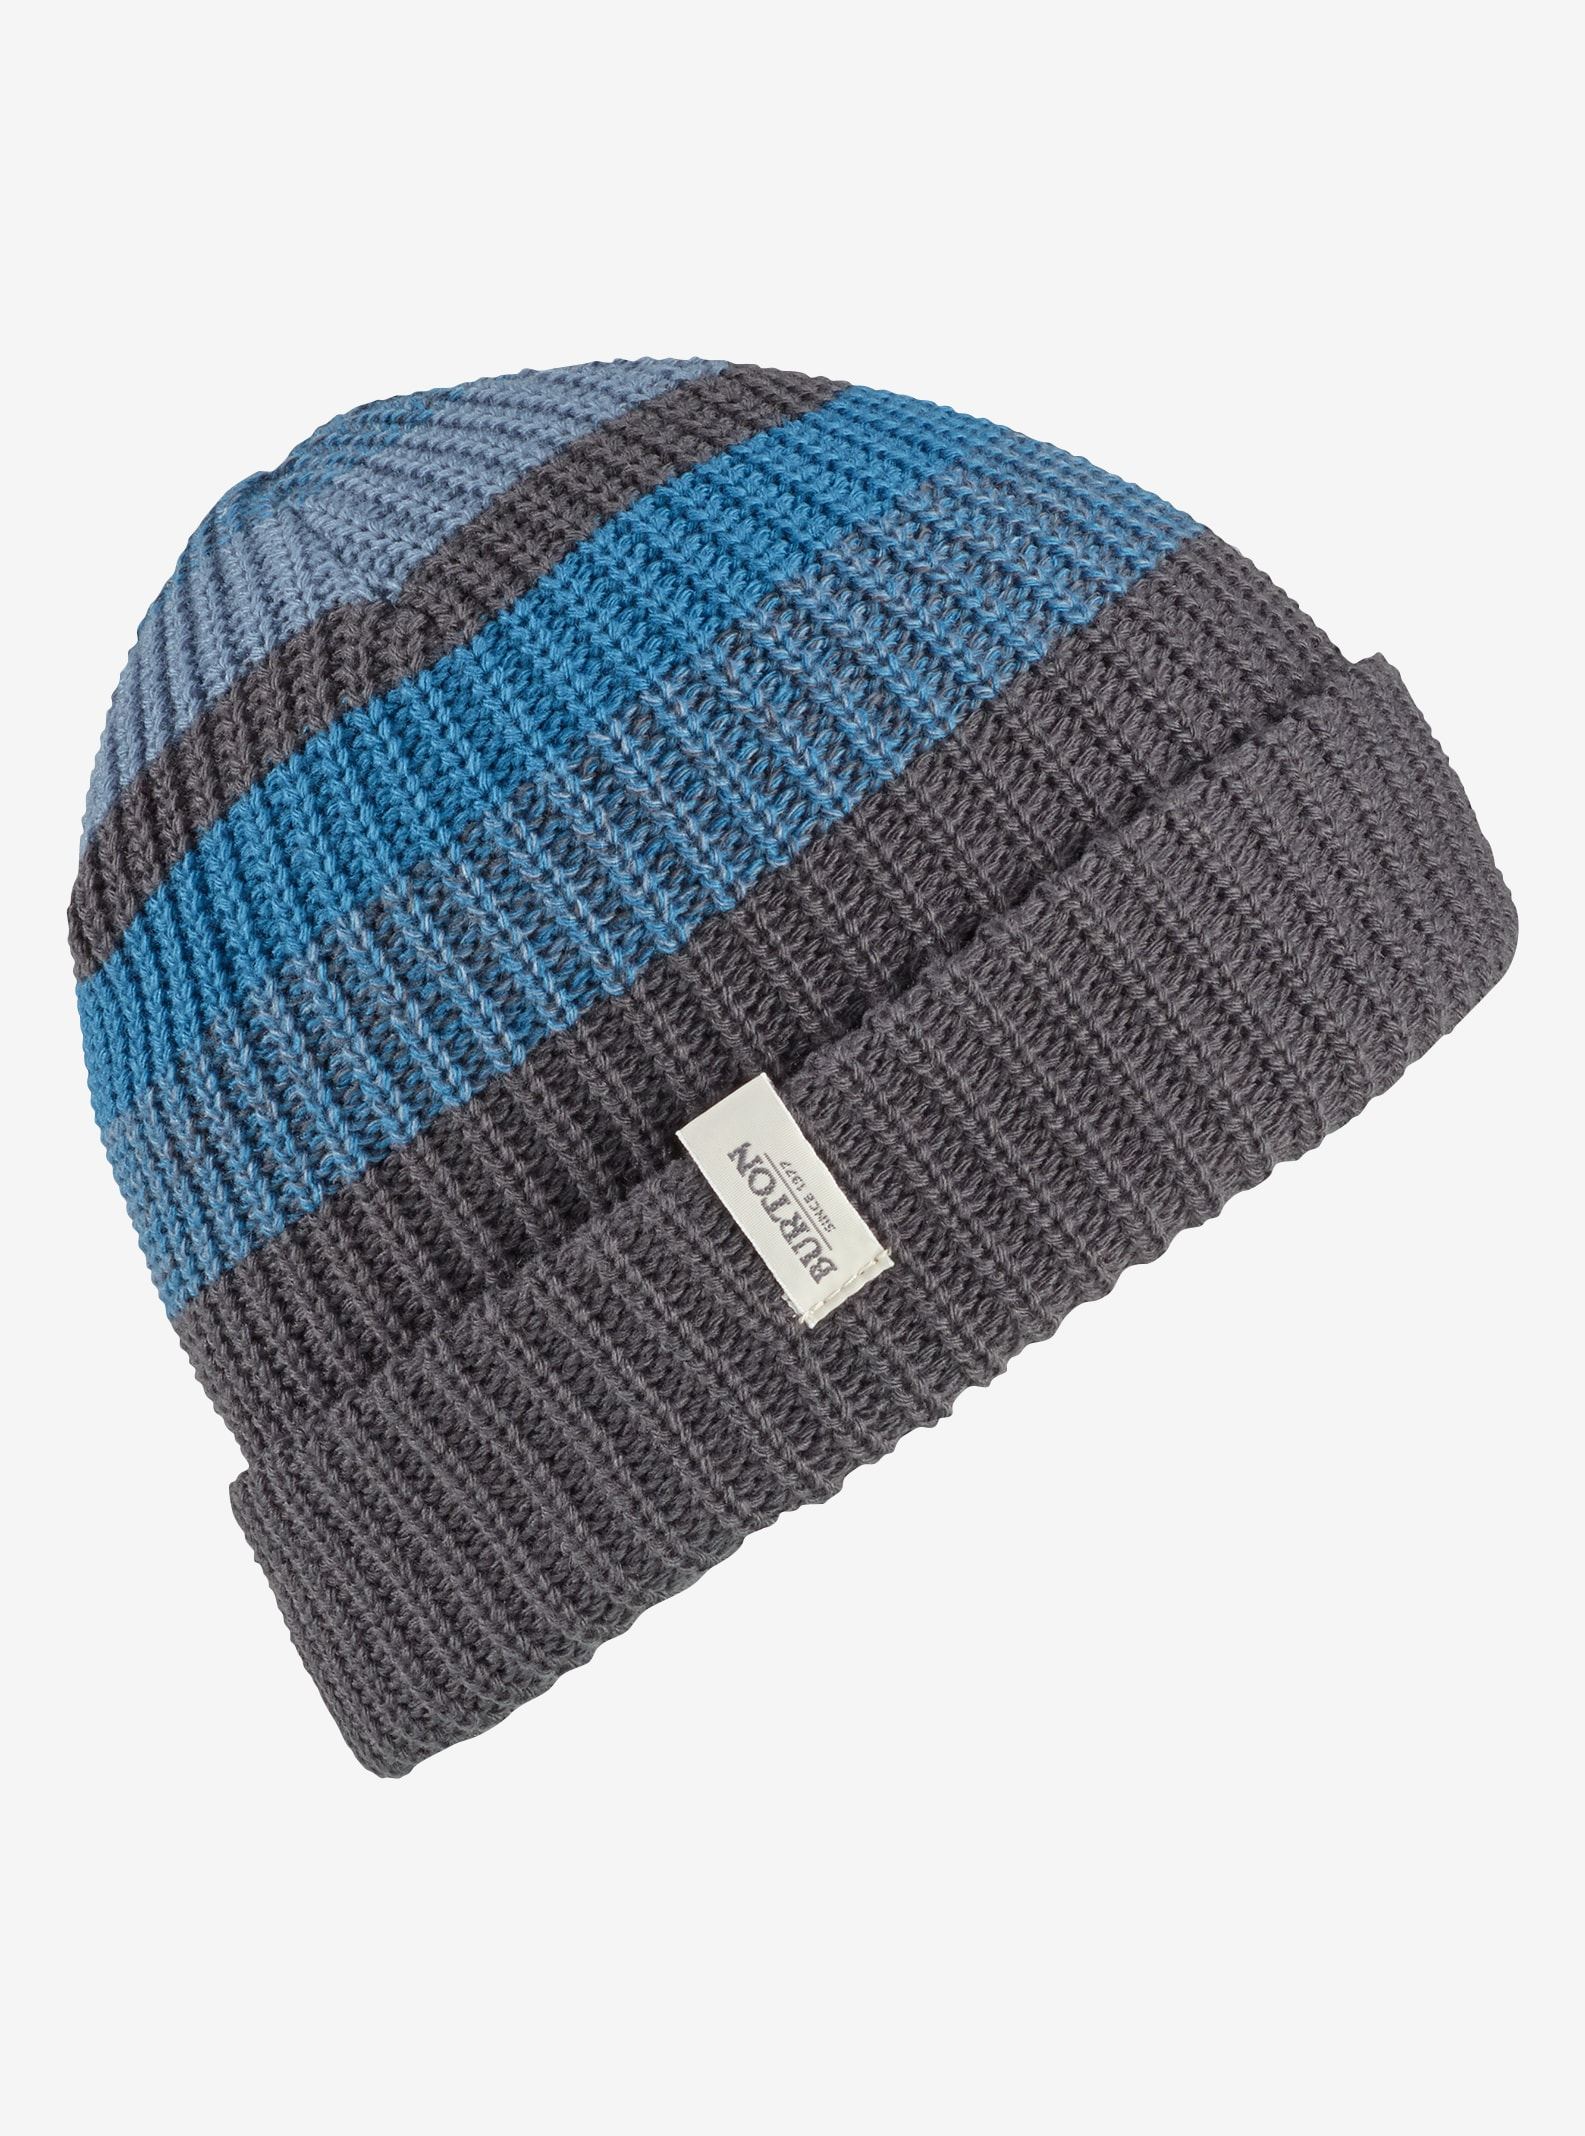 Boys' Burton Chute Beanie shown in Faded